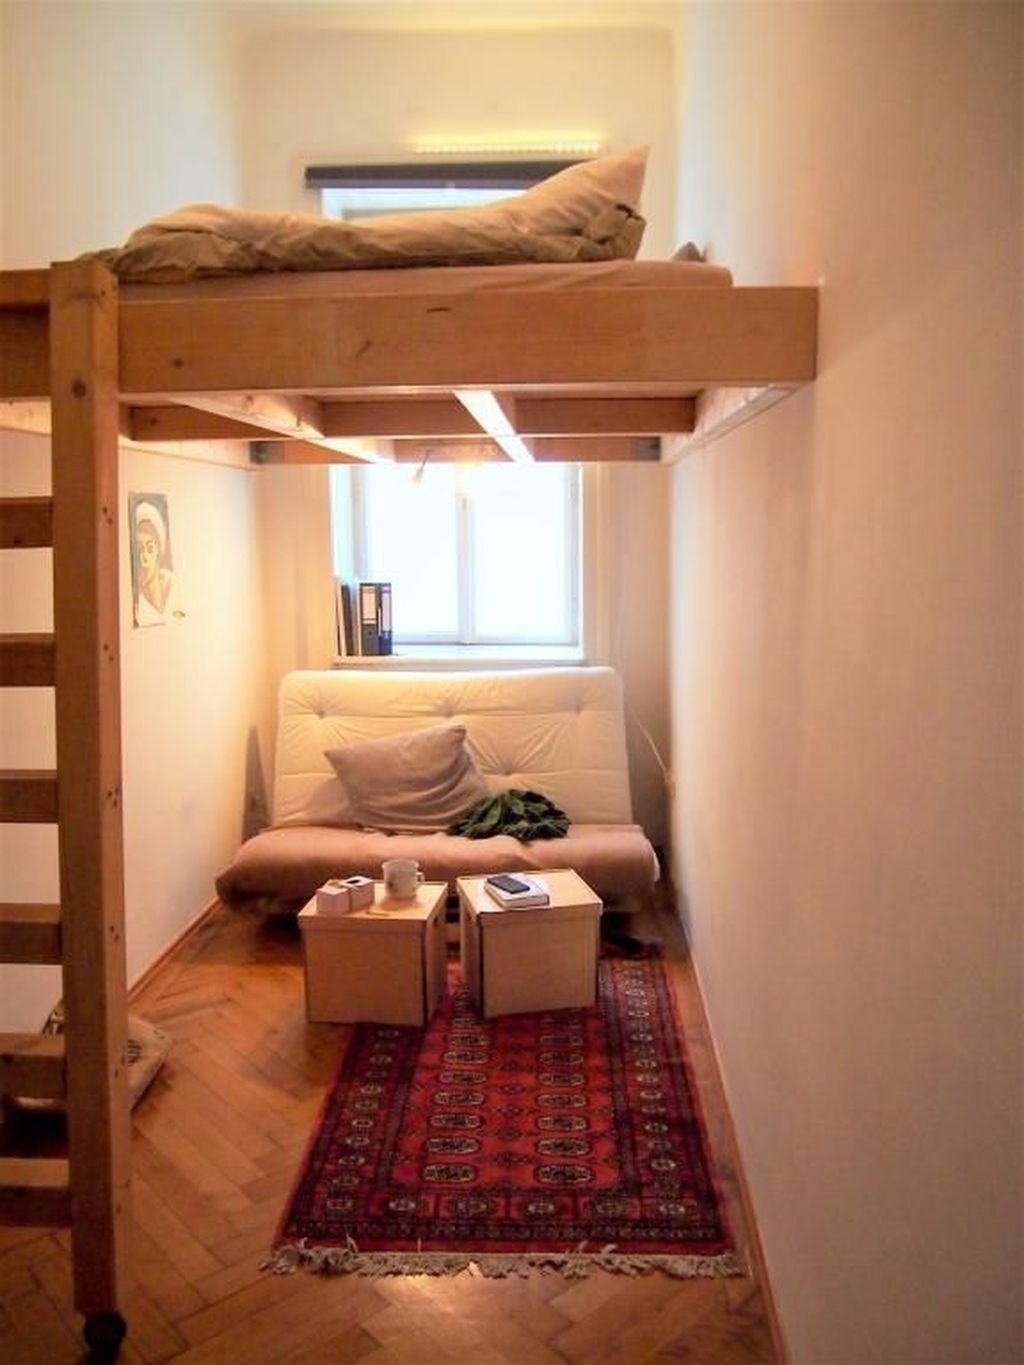 Pin By Trisnasari Cla On Loftbed Tiny House Tiny Bedroom Design